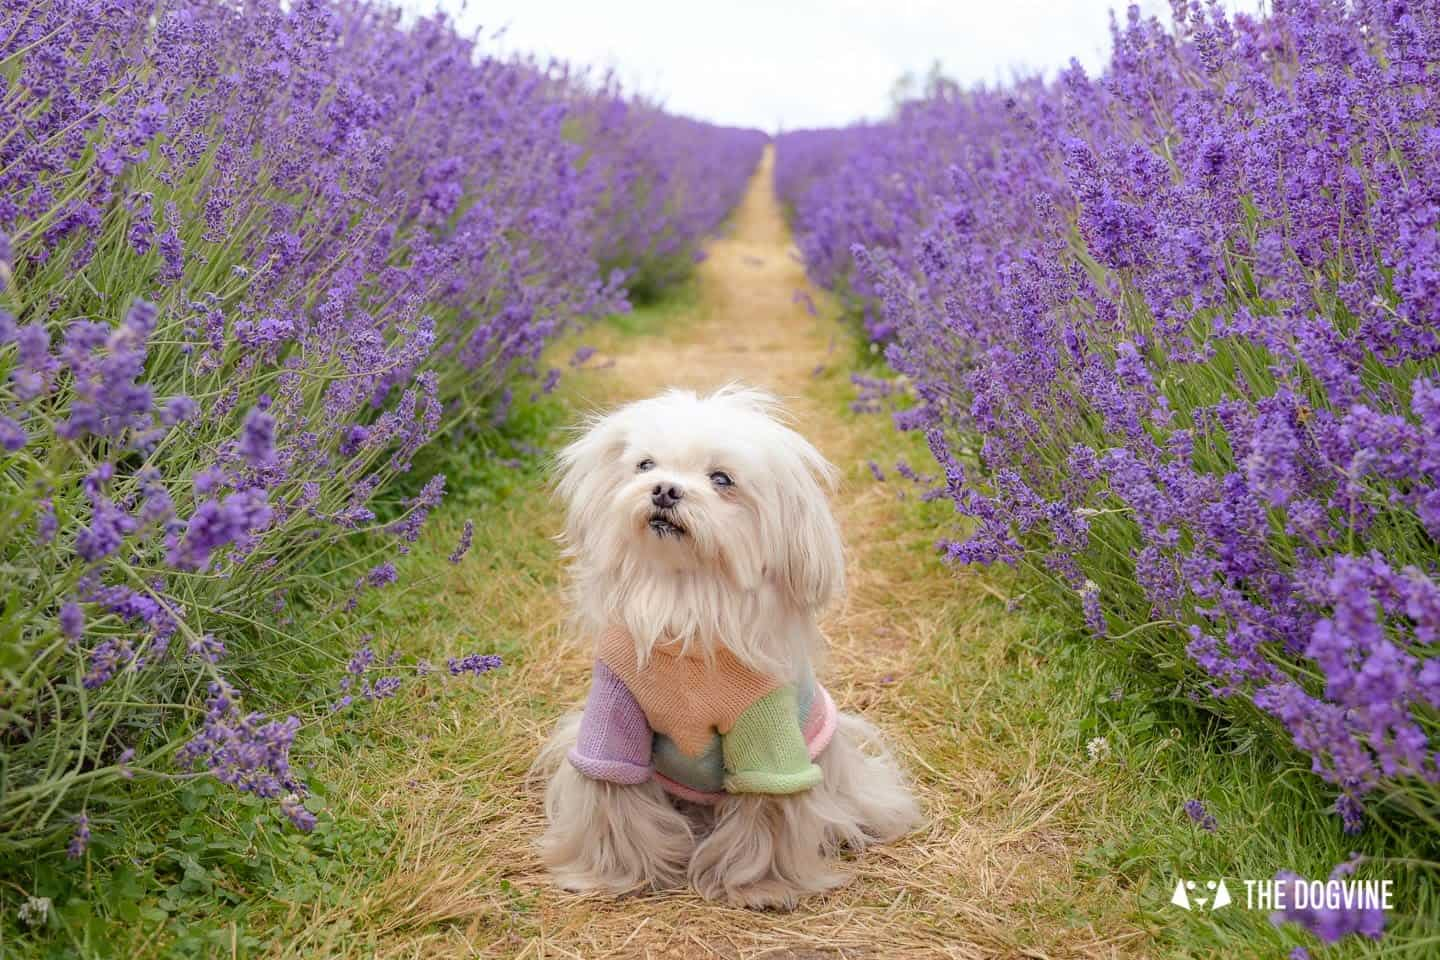 Dog-friendly Mayfield Lavender Farm - Lilliput the Maltese in the Lavender